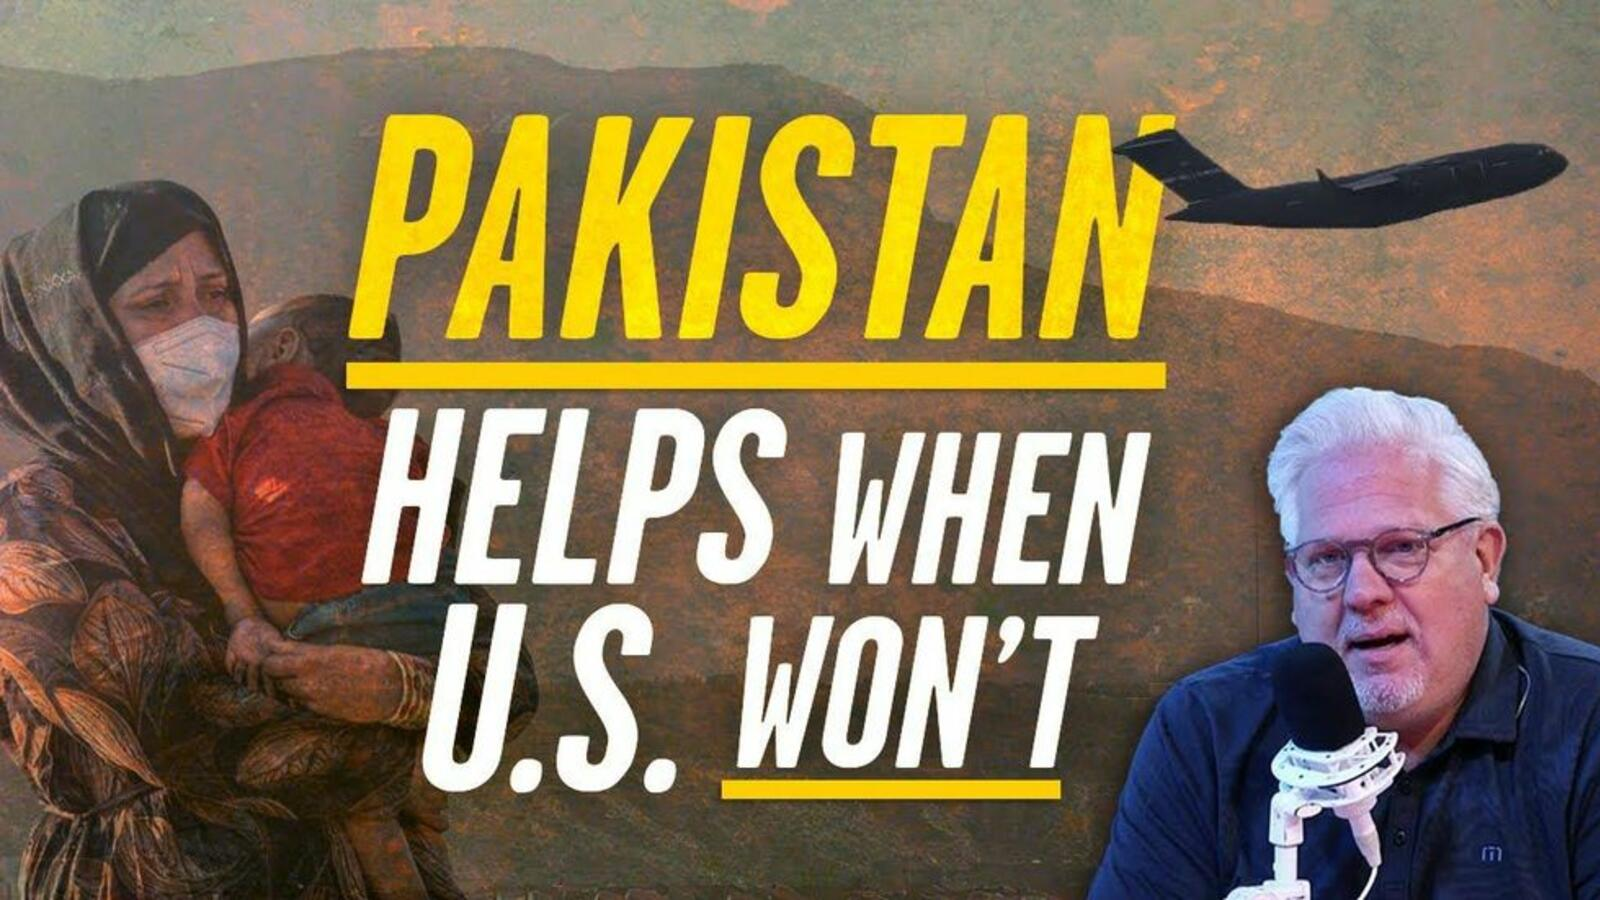 How an unlikely ally in PAKISTAN helped with Afghanistan evacuations